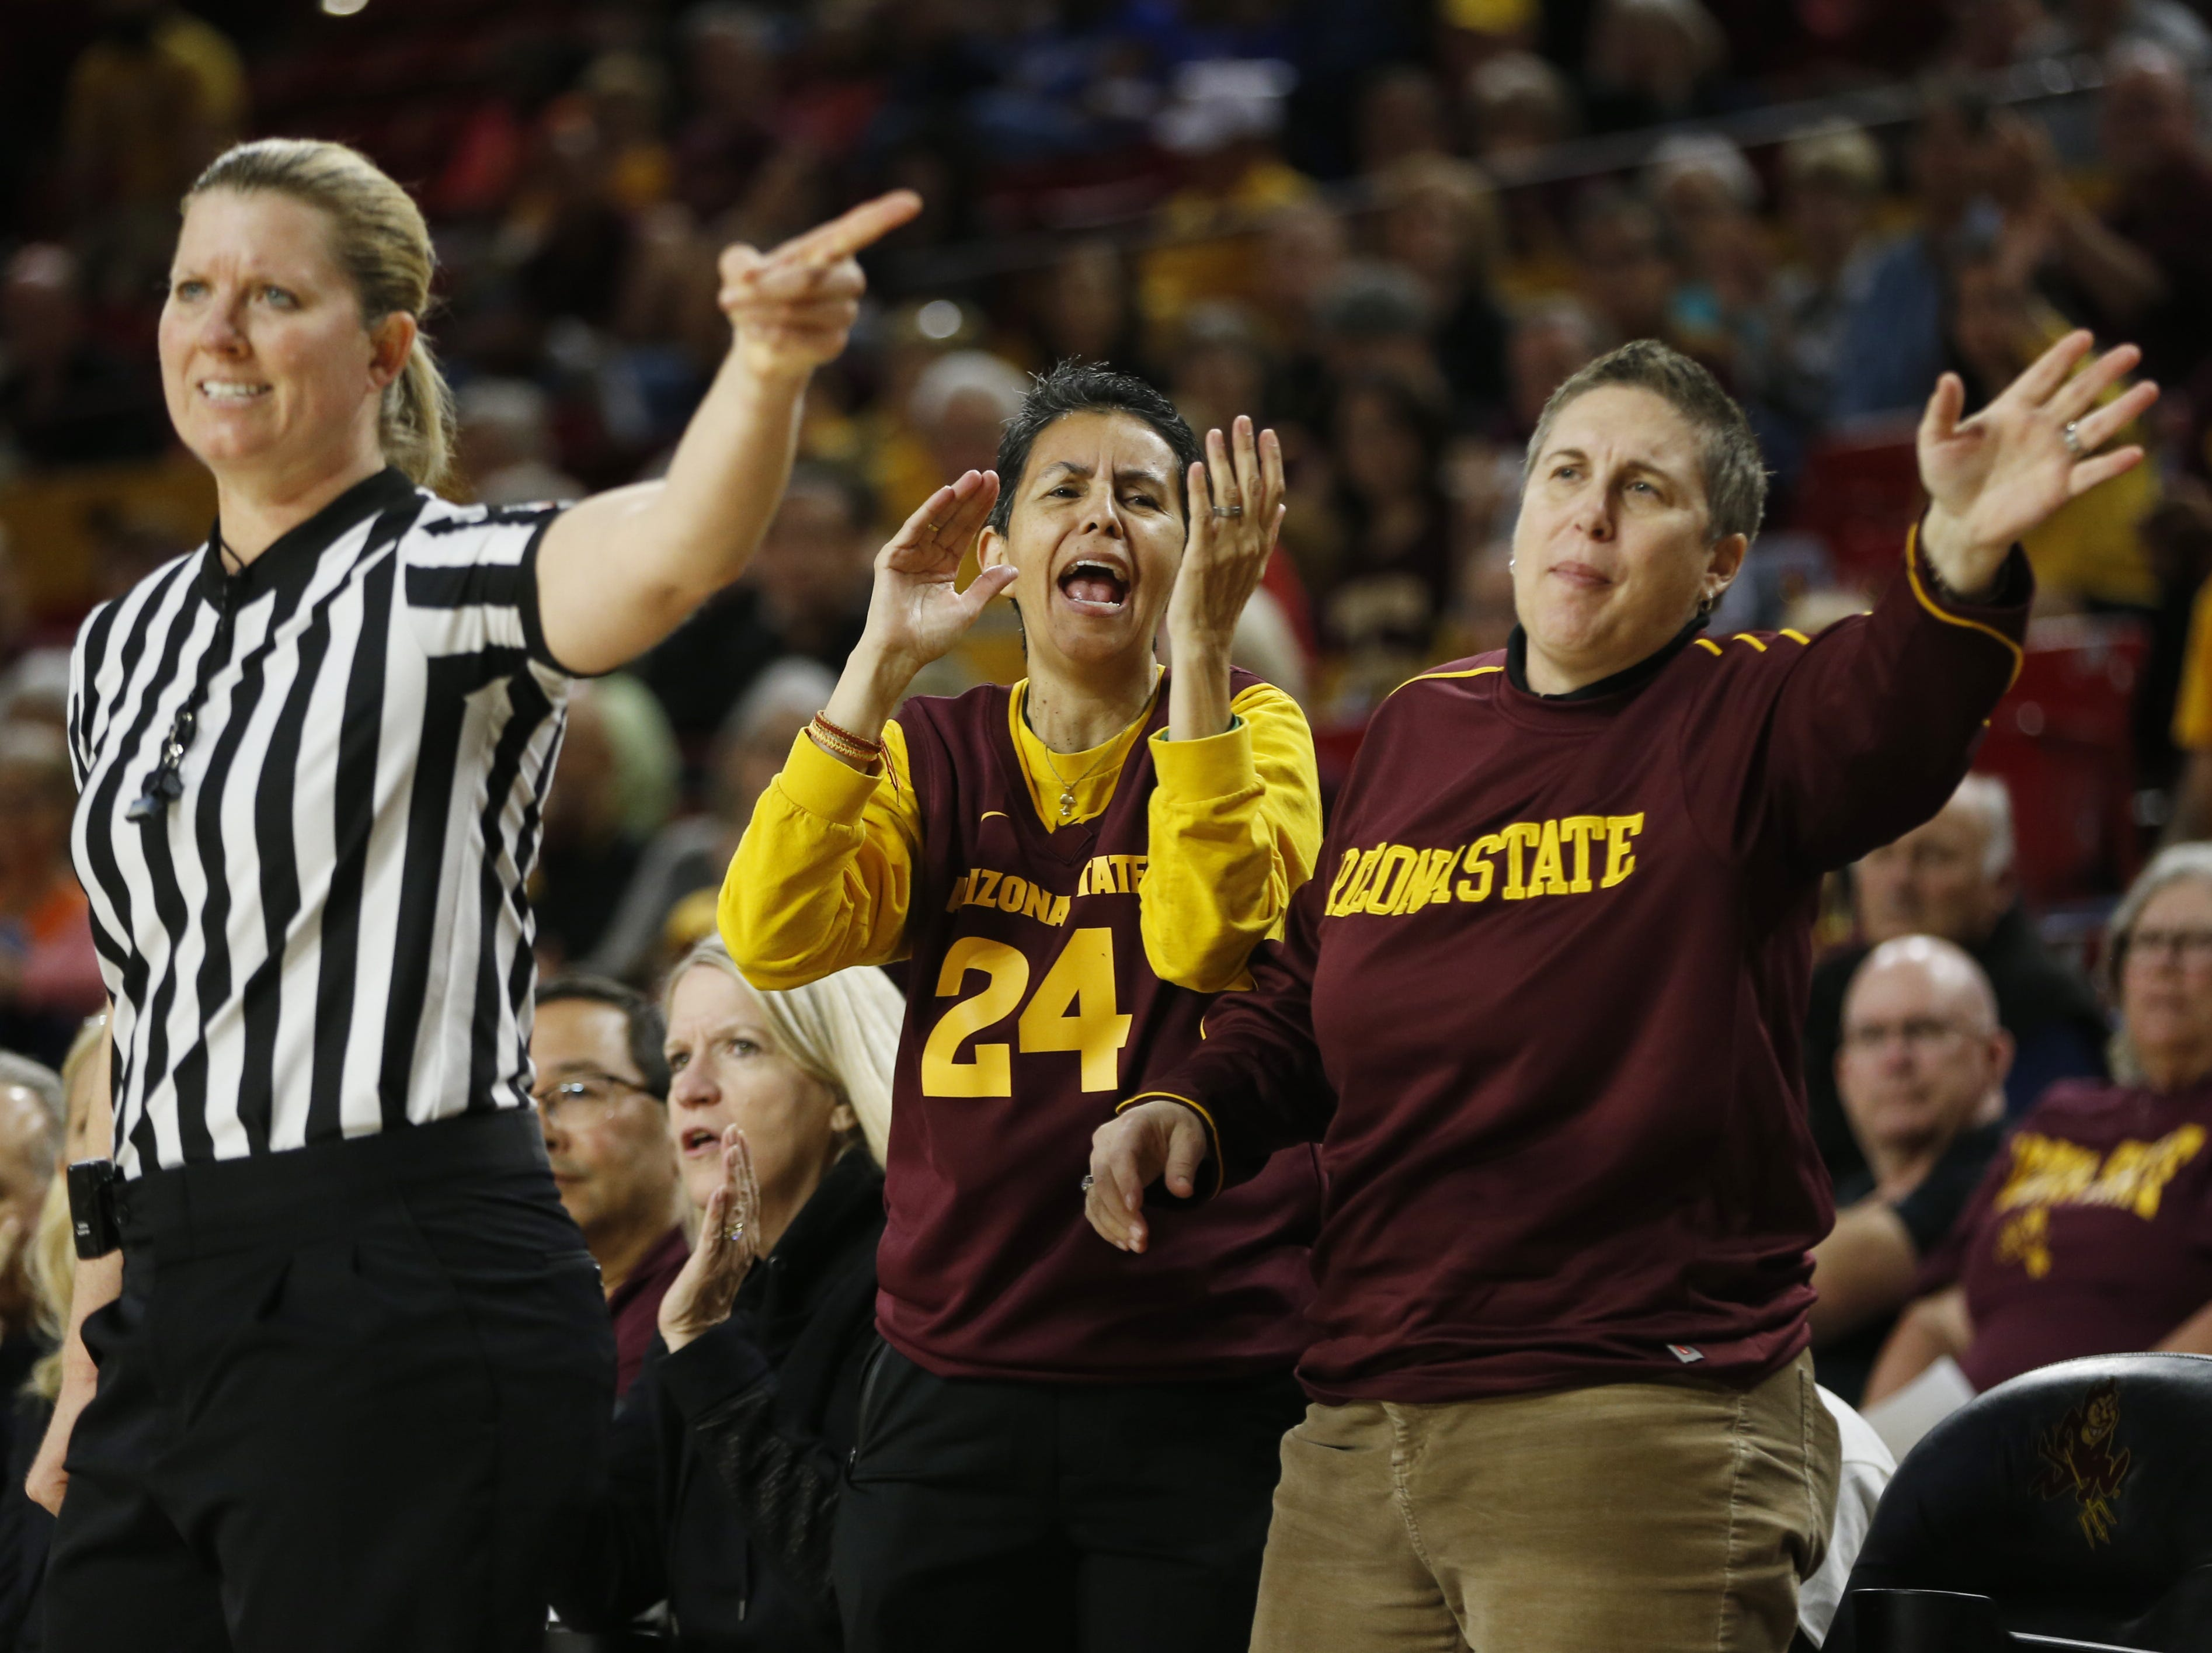 ASU fans react as a ball is called their way against Oregon State during the second half at Wells Fargo Arena in Tempe, Ariz. on March 1, 2019.